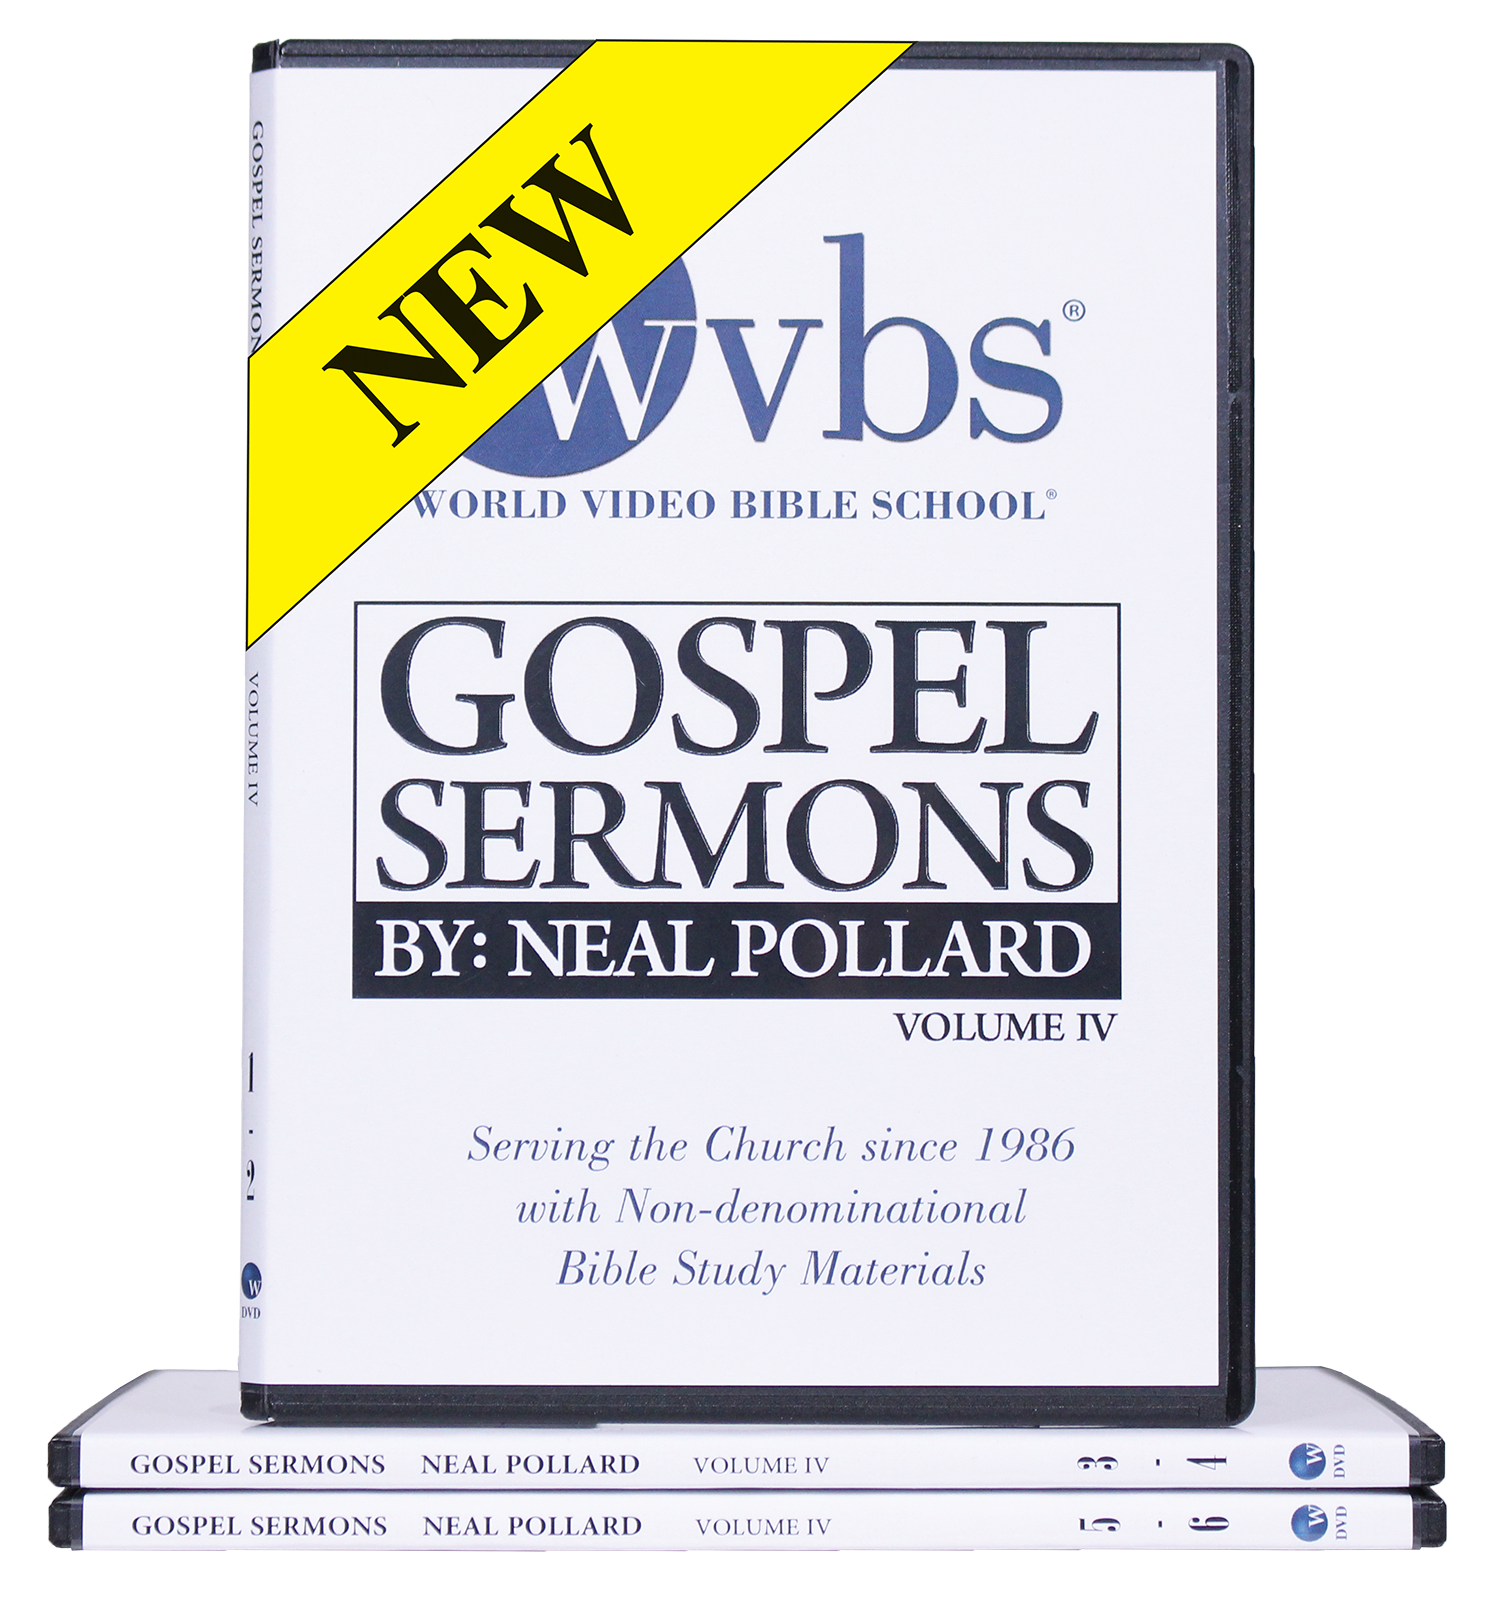 Gospel Sermons by Neal Pollard